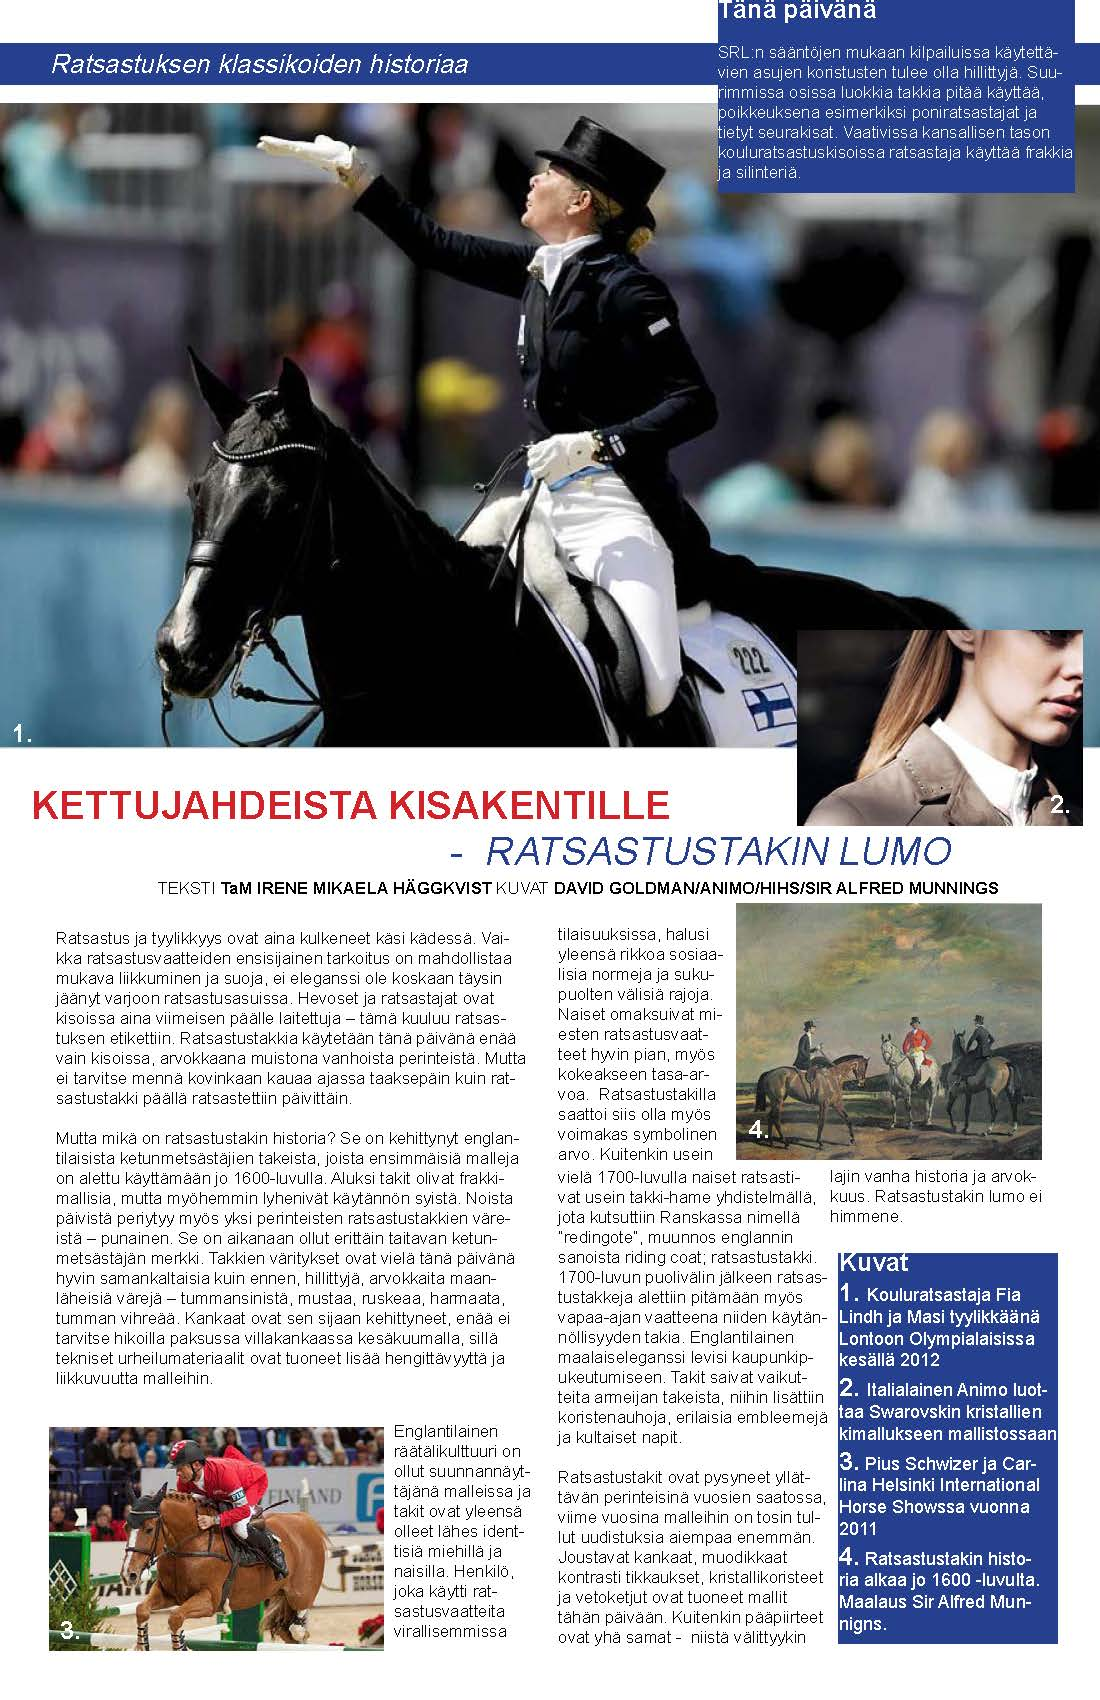 Irene Mikaela Häggkvist as a columnist for the Hippos magazine (The Equestrian Federation of Finland) about the history of riding apparel. History of riding jackets, November 2012.